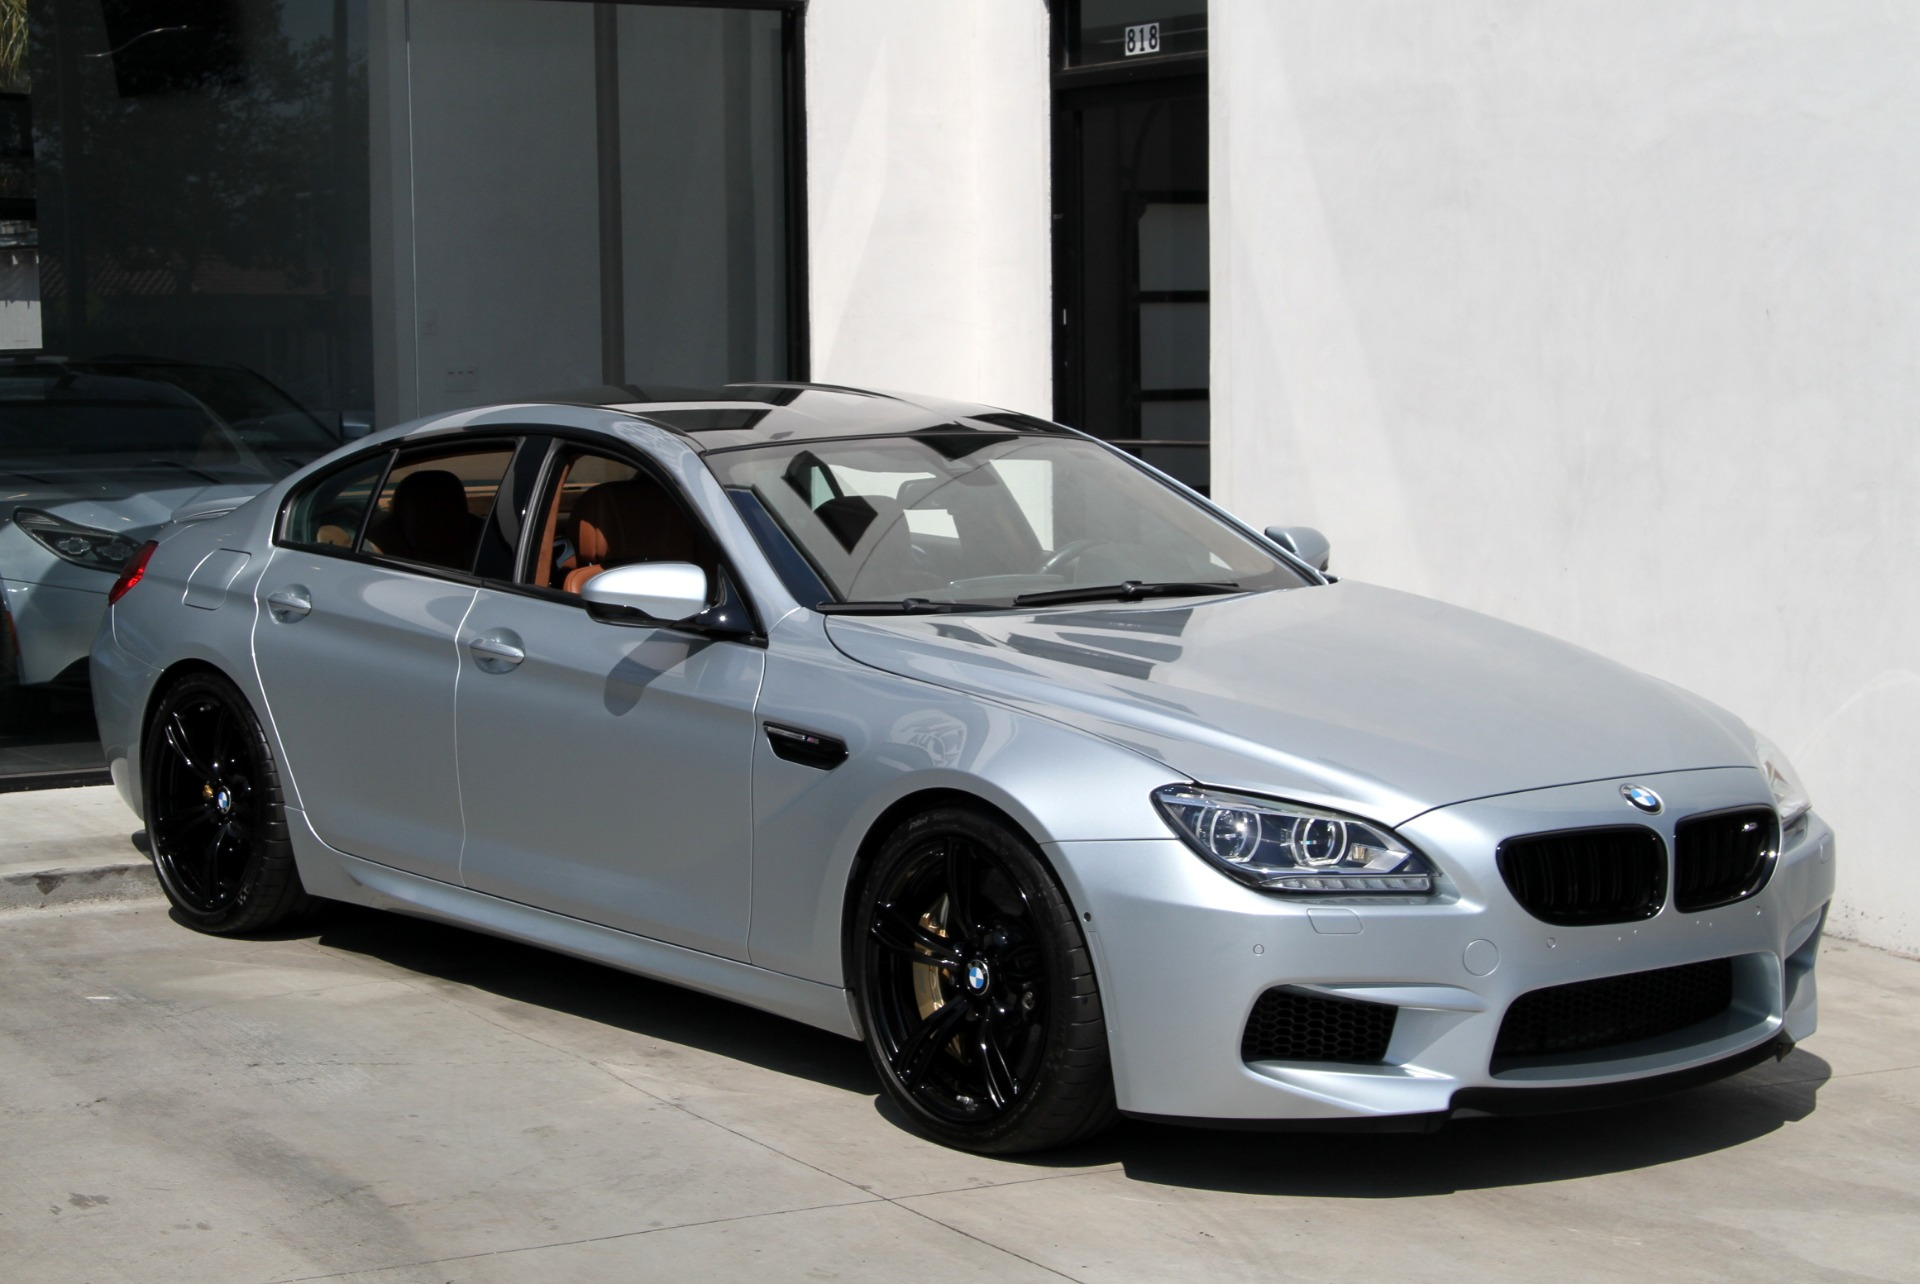 2014 bmw m6 gran coupe dinan upgrades stock 6247 for sale near redondo beach ca ca. Black Bedroom Furniture Sets. Home Design Ideas